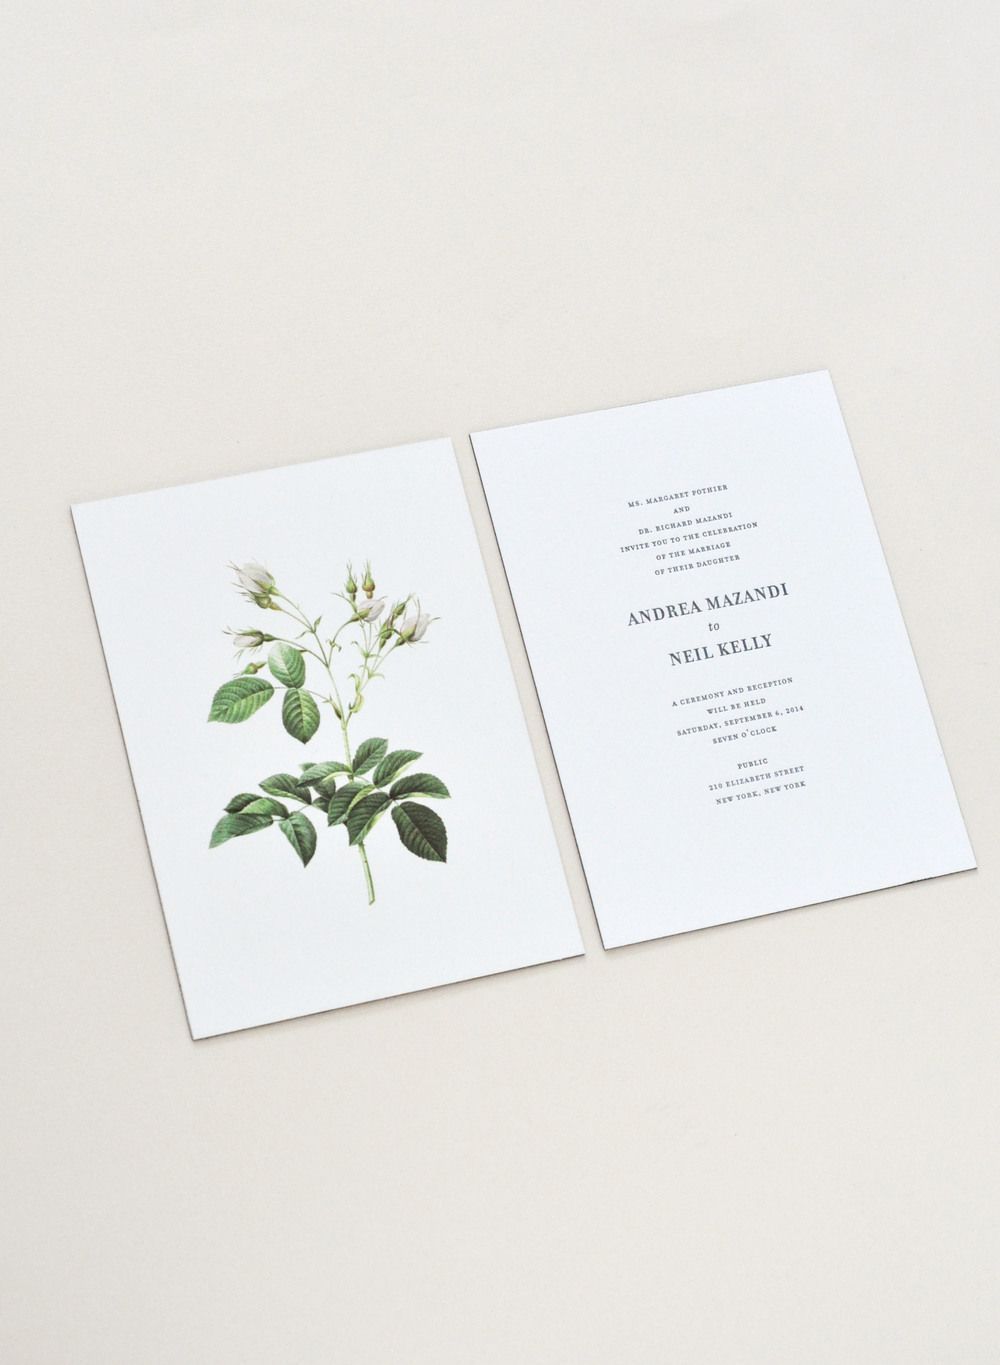 Andrea Neil Wedding Invitation Paper Type: Leaf Wedding Invitations Paper At Websimilar.org